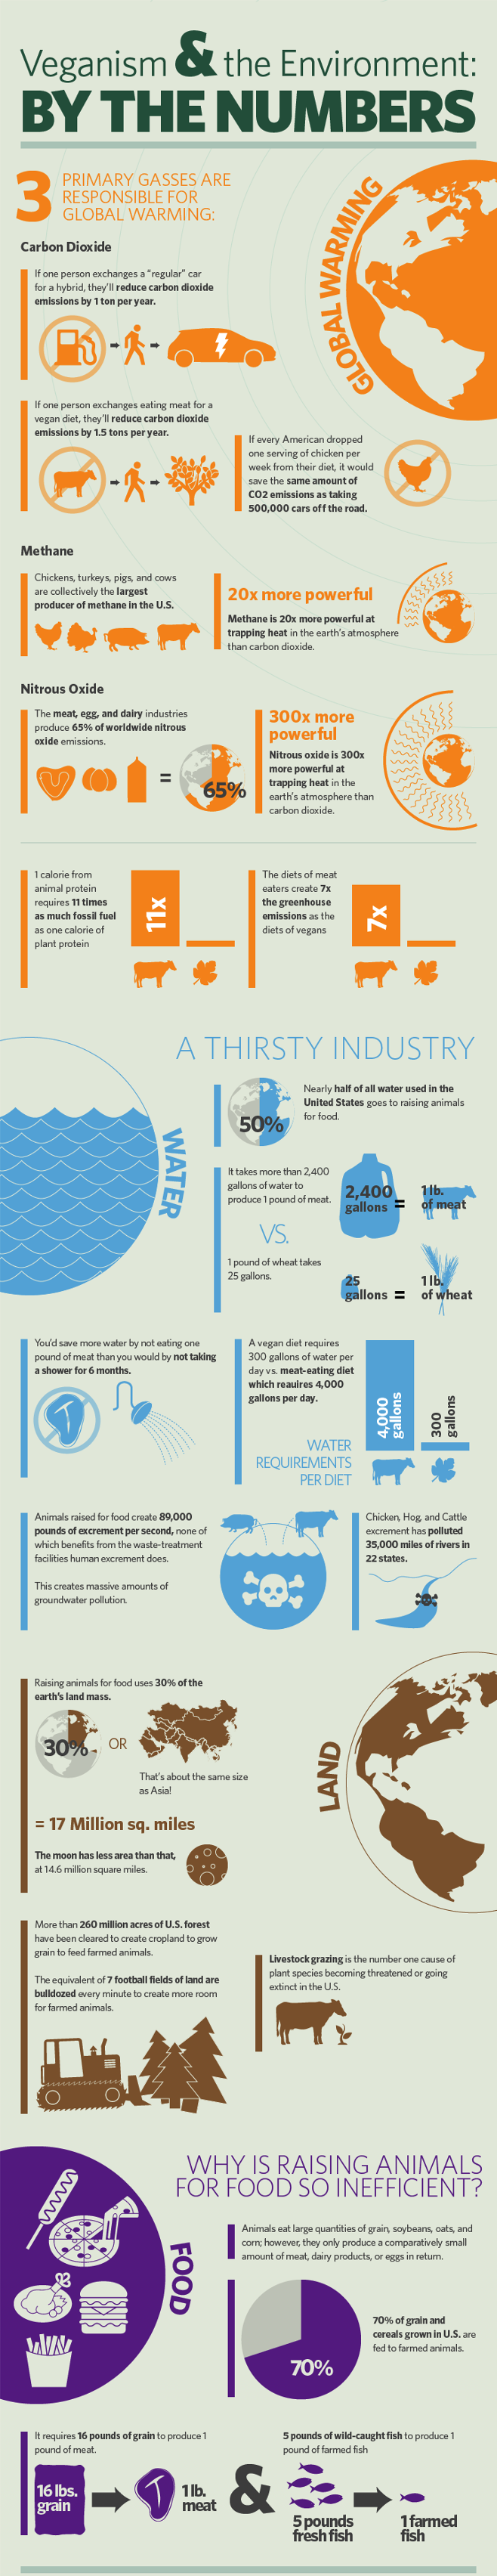 the environmental costs of animal agriculture